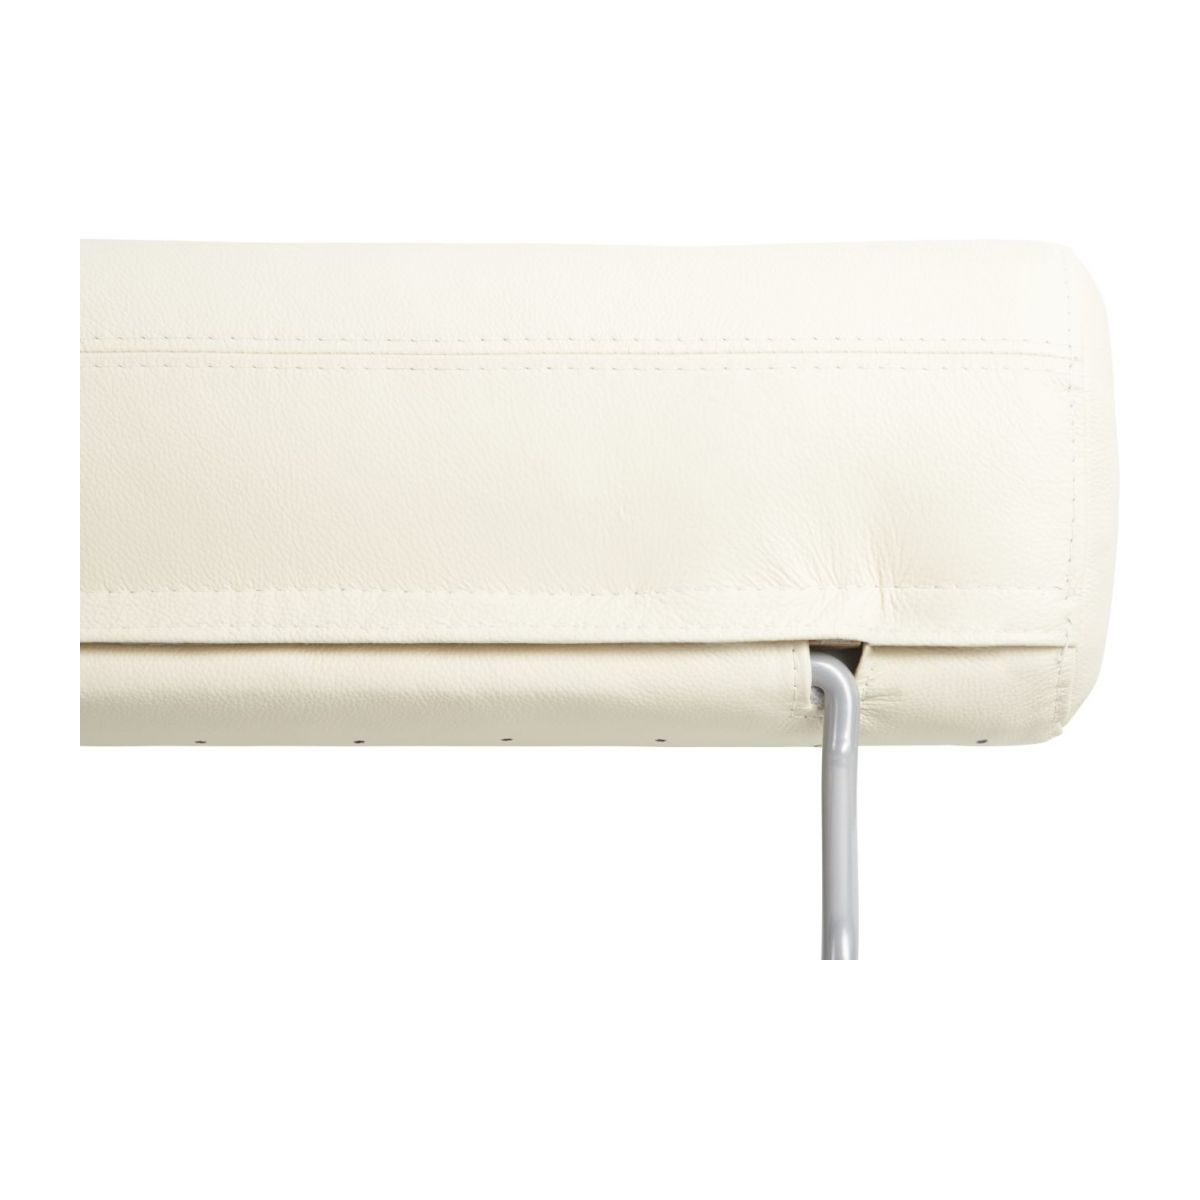 Headrest in Eton veined leather, cream n°5